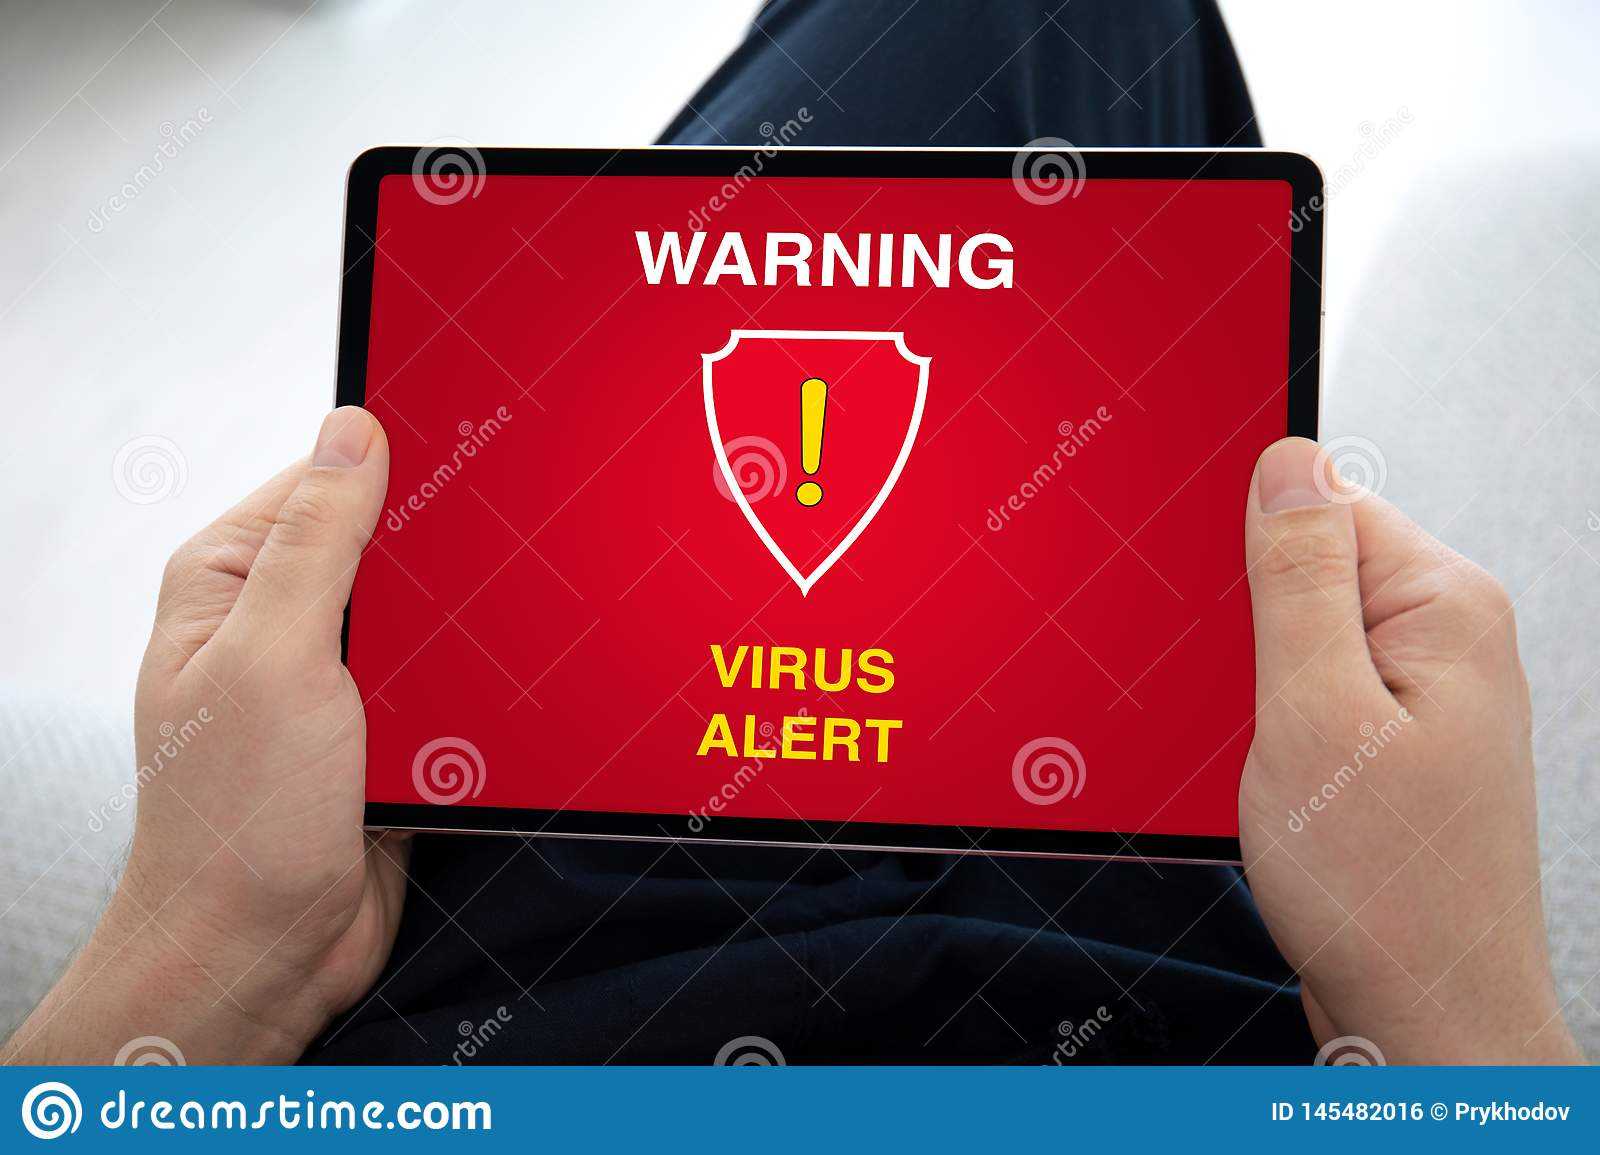 Man hands holding computer tablet with warning virus alert